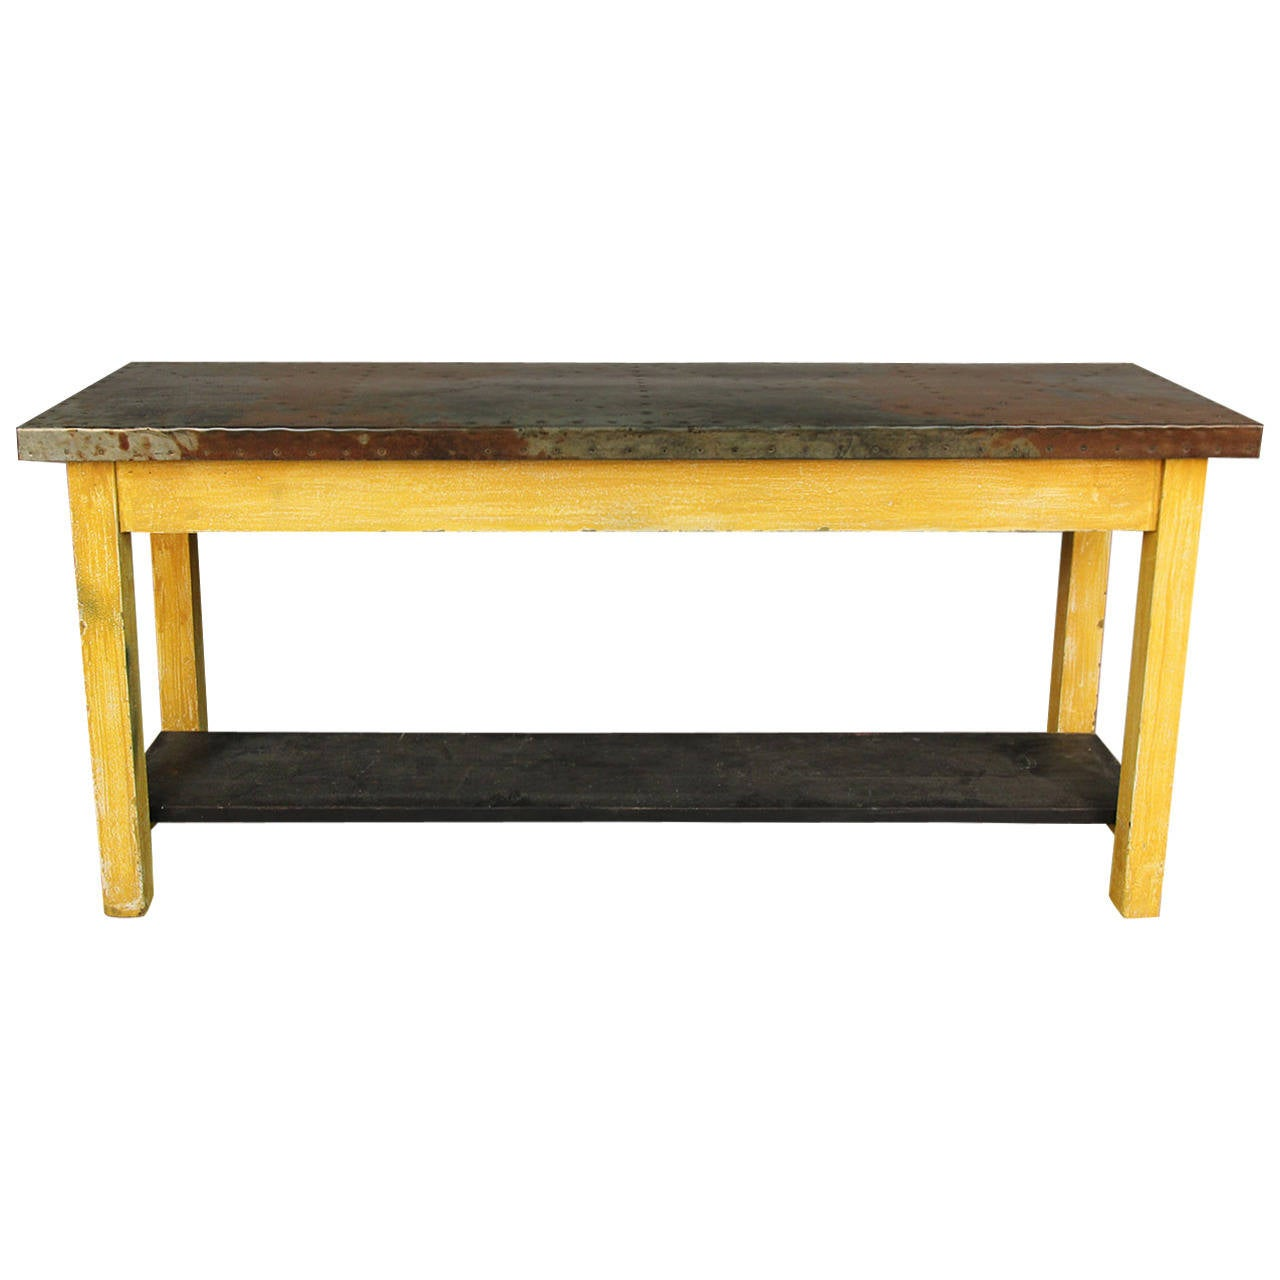 Unique zinc top console table for sale at 1stdibs for Unique console tables for sale